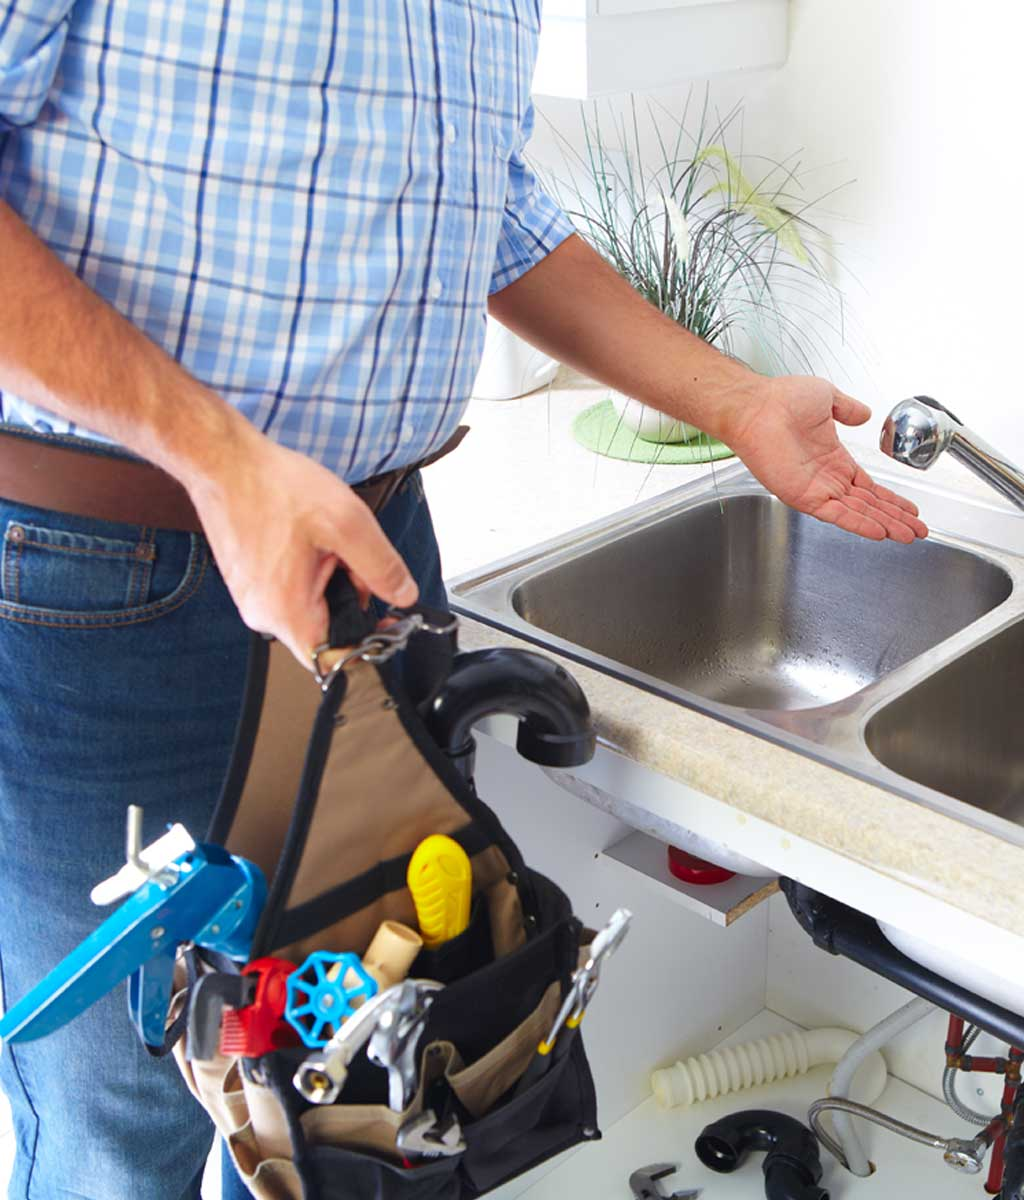 Louisville plumber working on sink with tools